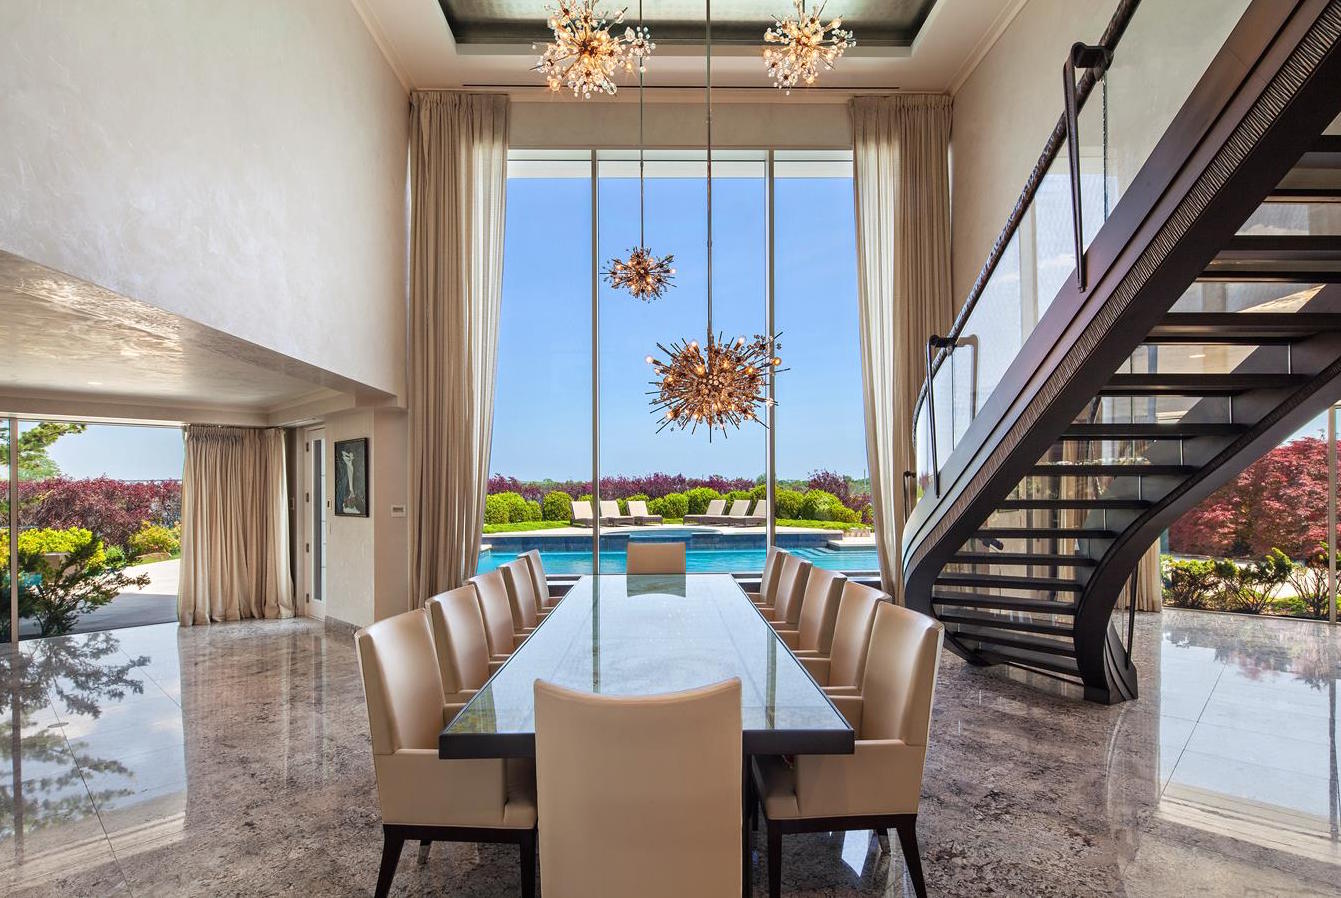 Outrageous $18M Mill Basin Mansion Remains On the Market For Its Storied Past